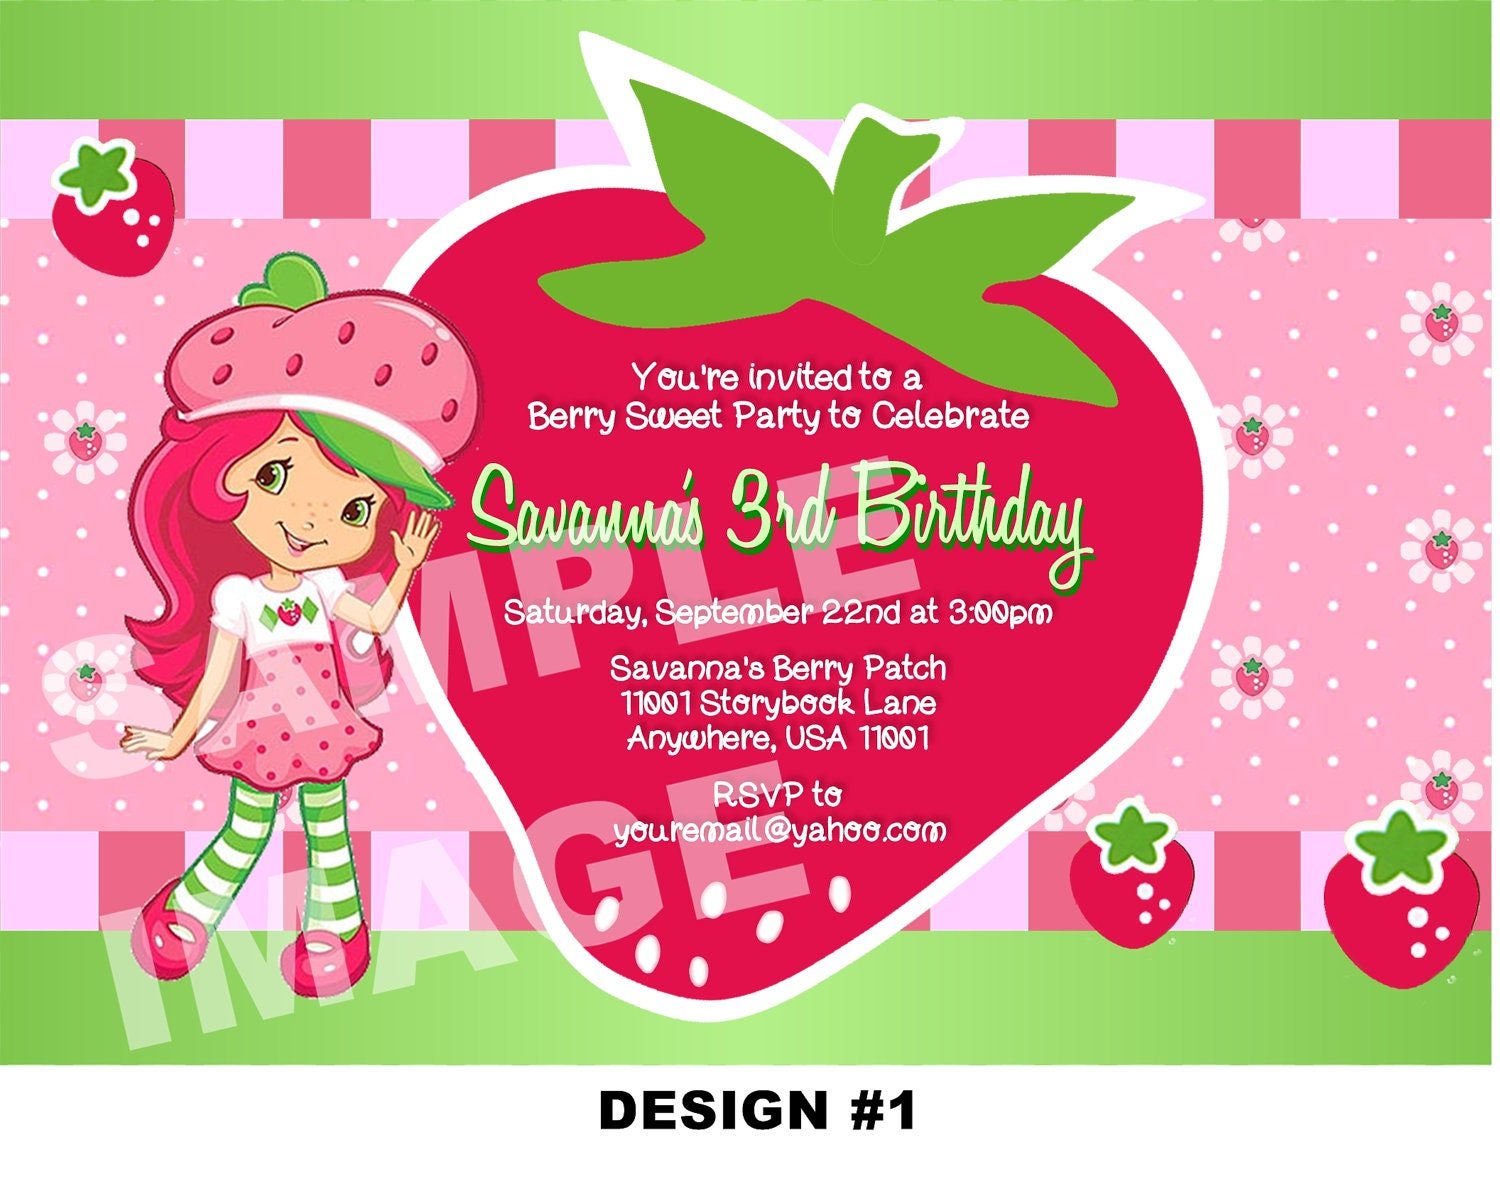 Strawberry Shortcake Birthday Invitations is one of our best ideas you might choose for invitation design